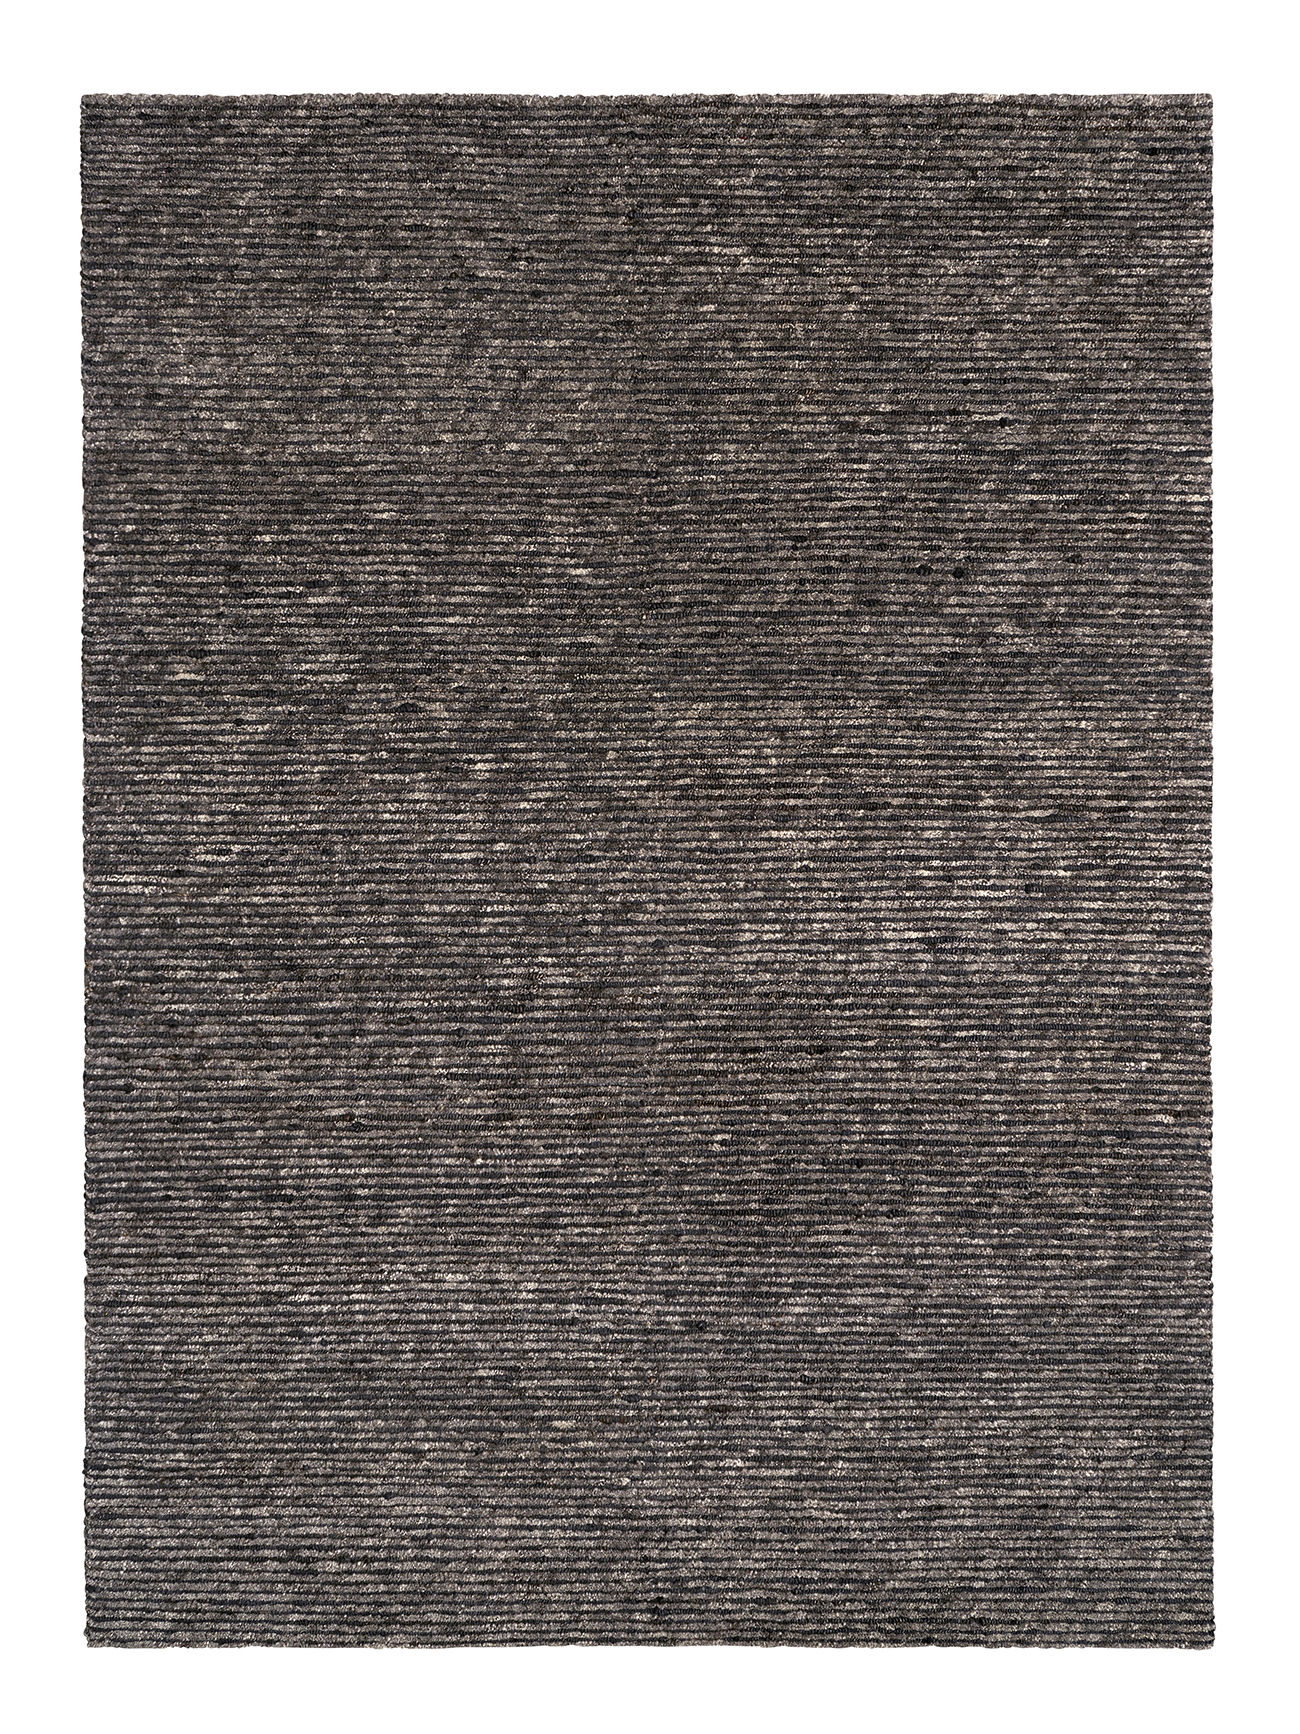 Husk Weave Flat Rug Ink Make Your House A Home Bendigo